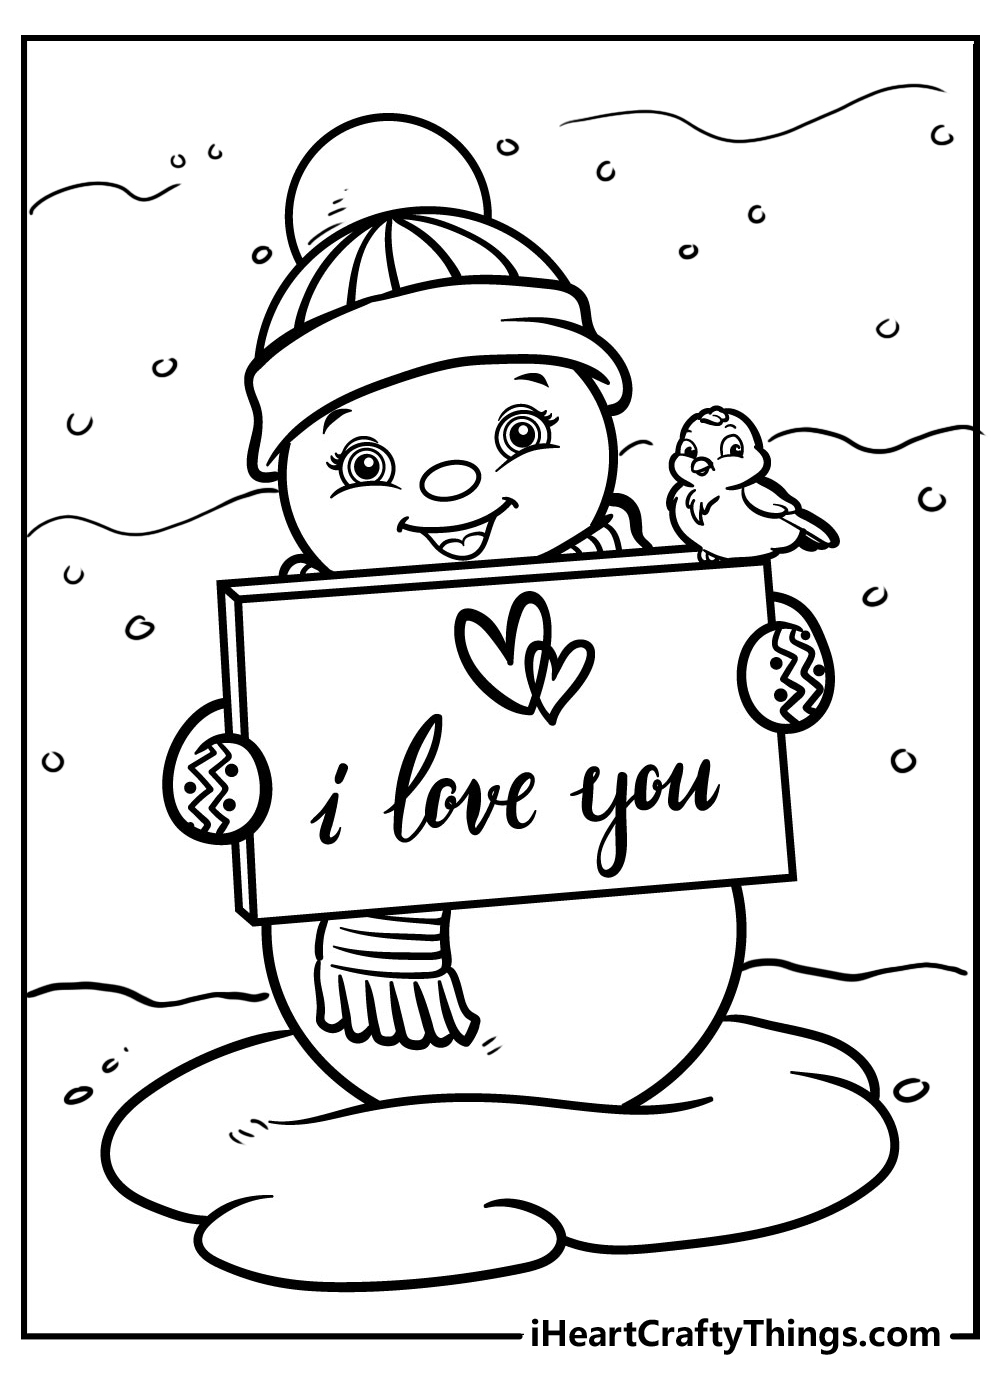 i love you snowman coloring pages free pdf